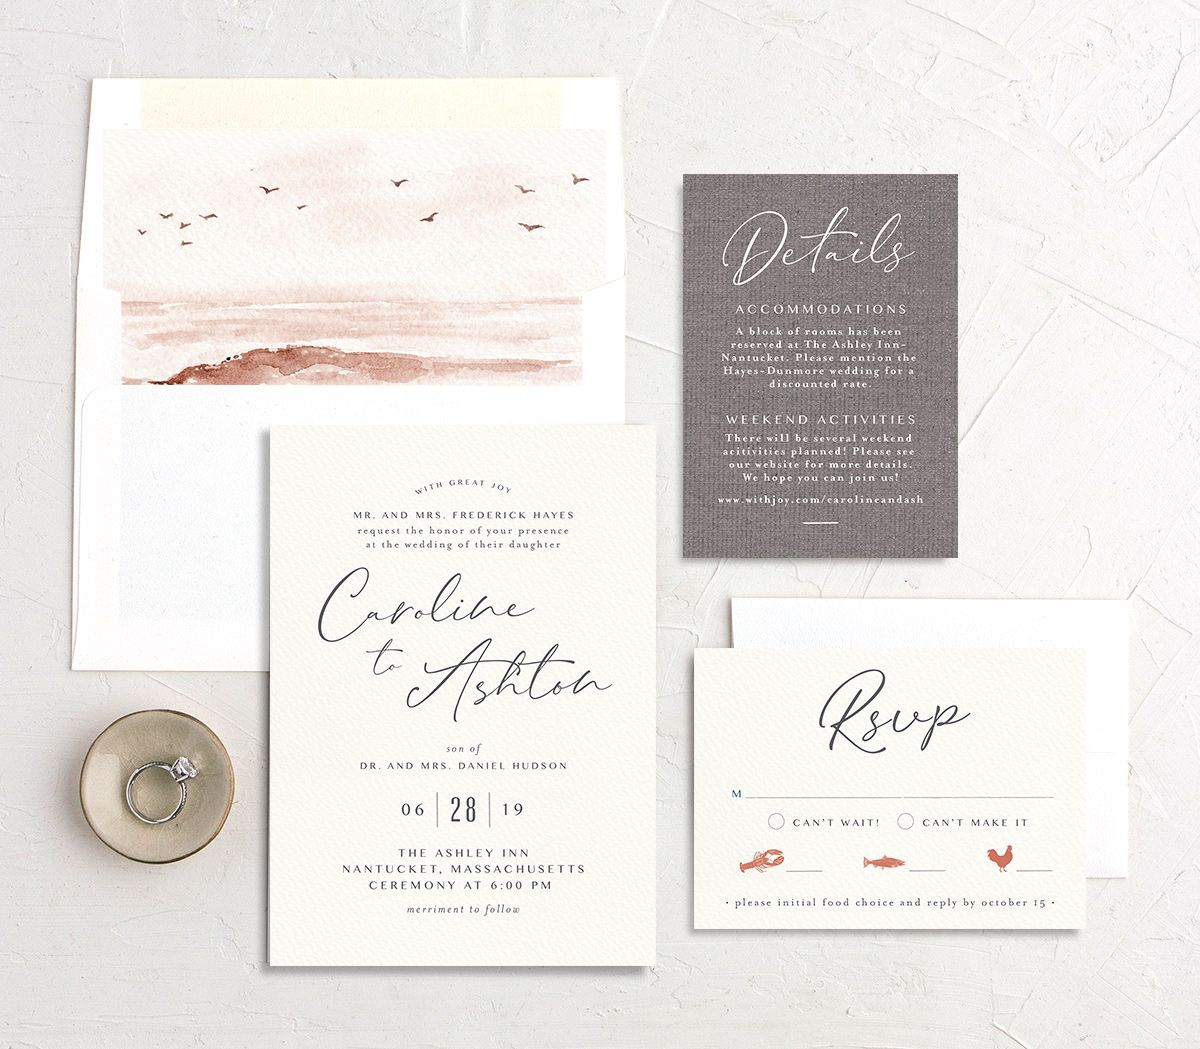 Coastal Love wedding invitation suite in grey